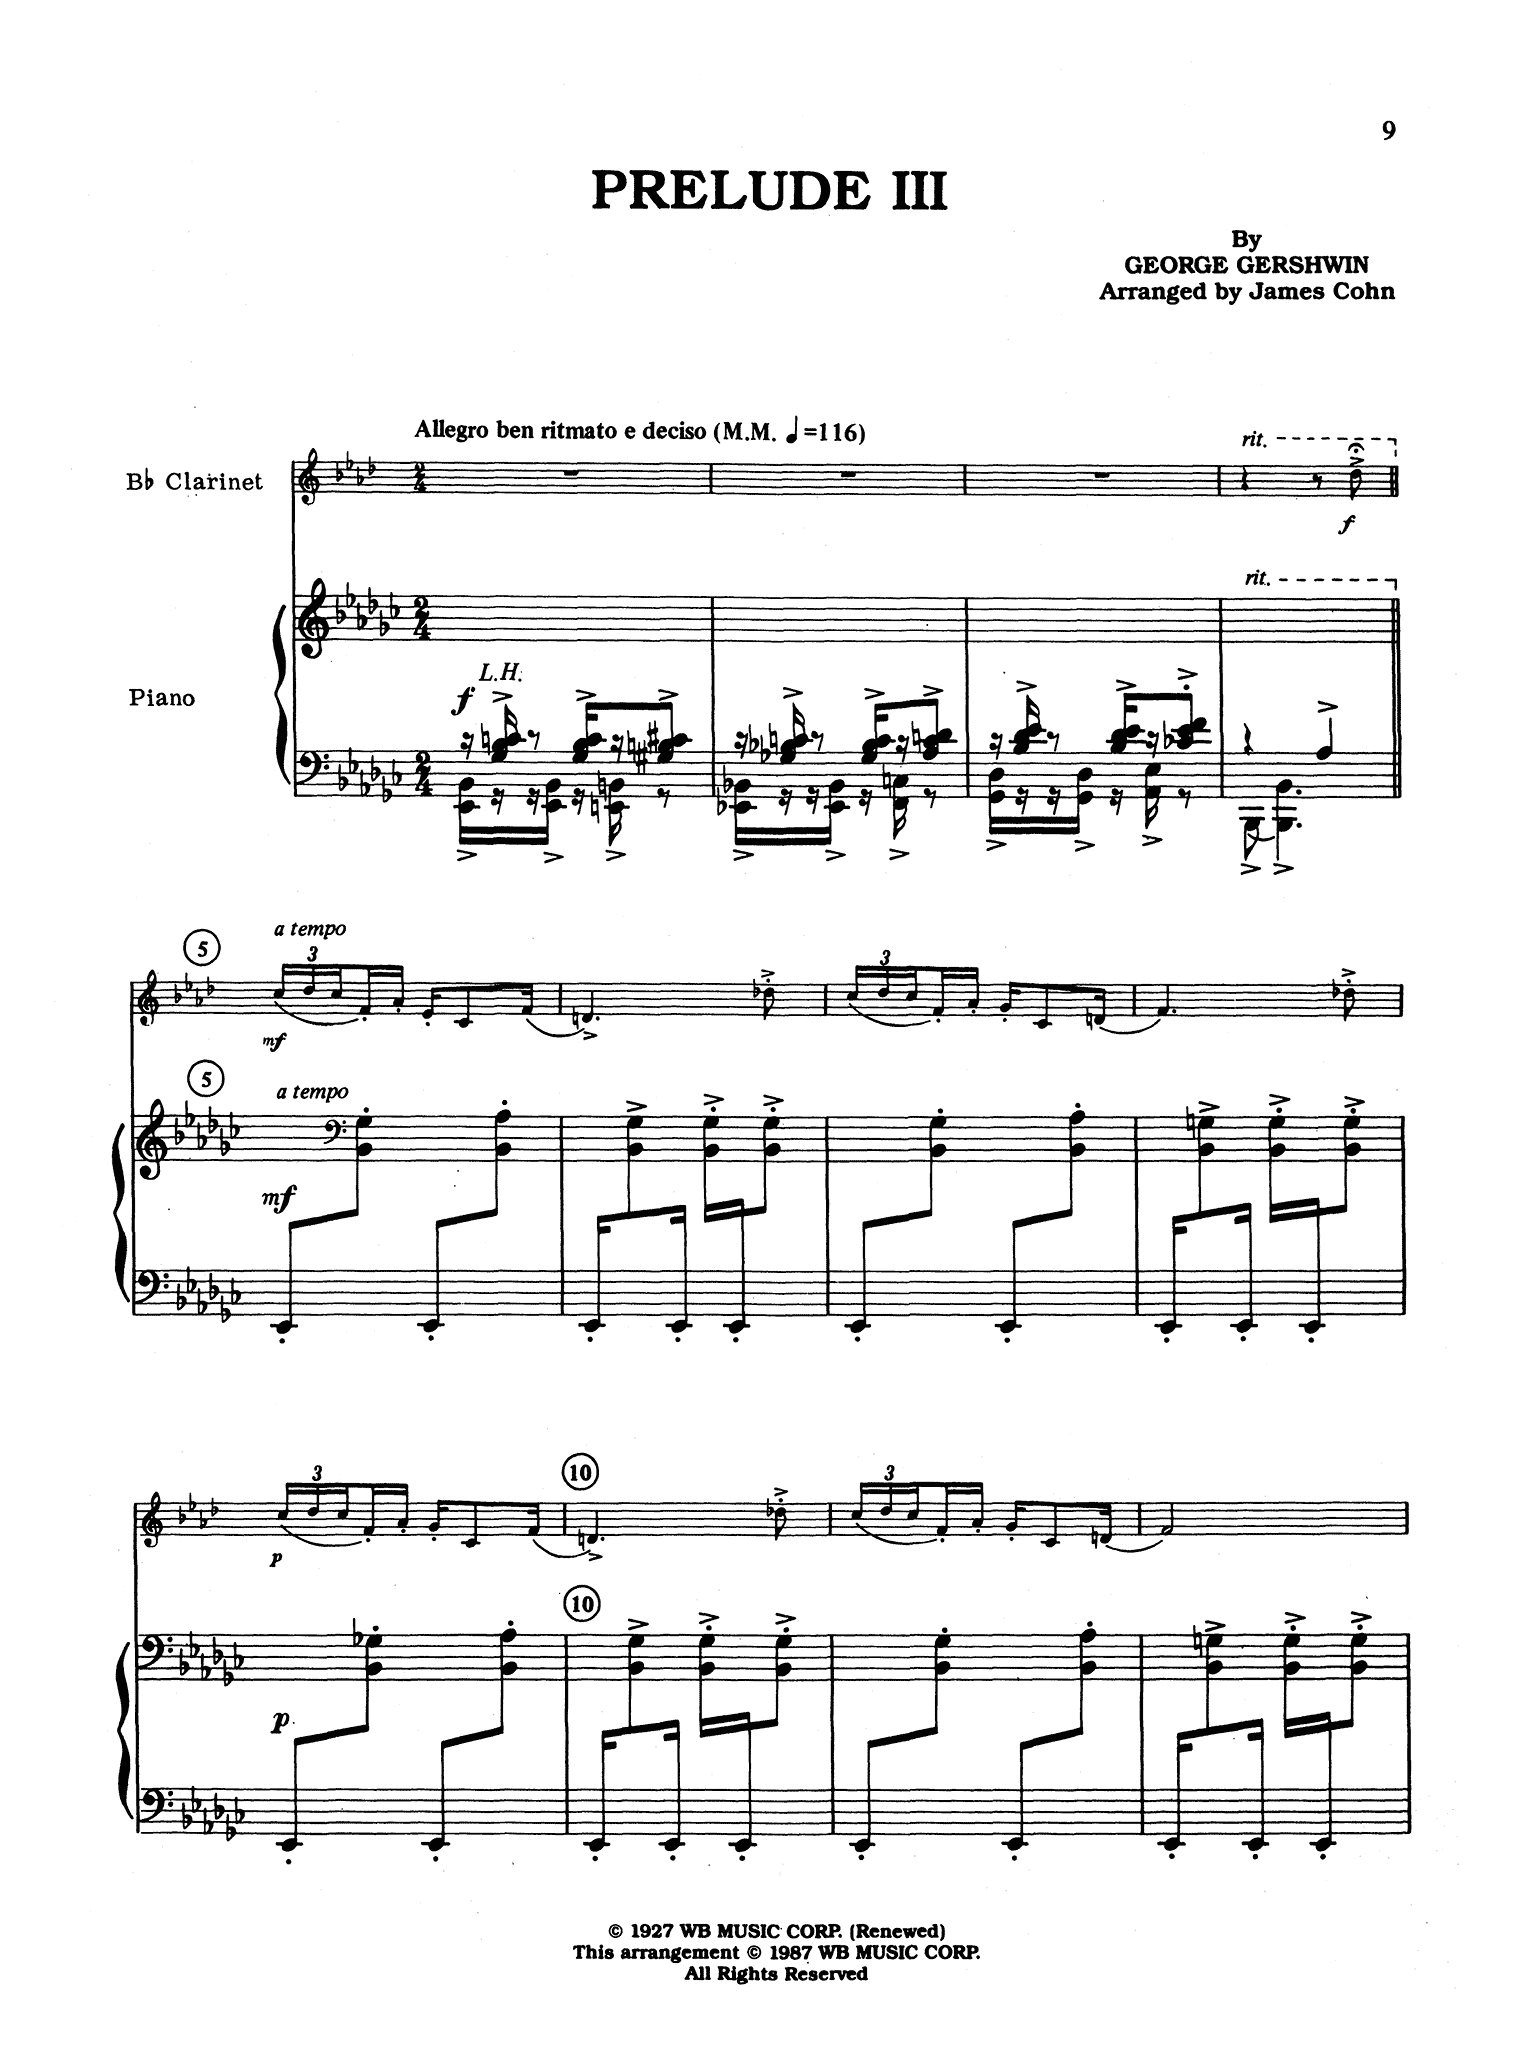 Gershwin 3 Preludes, arranged by Cohn - Movement 3